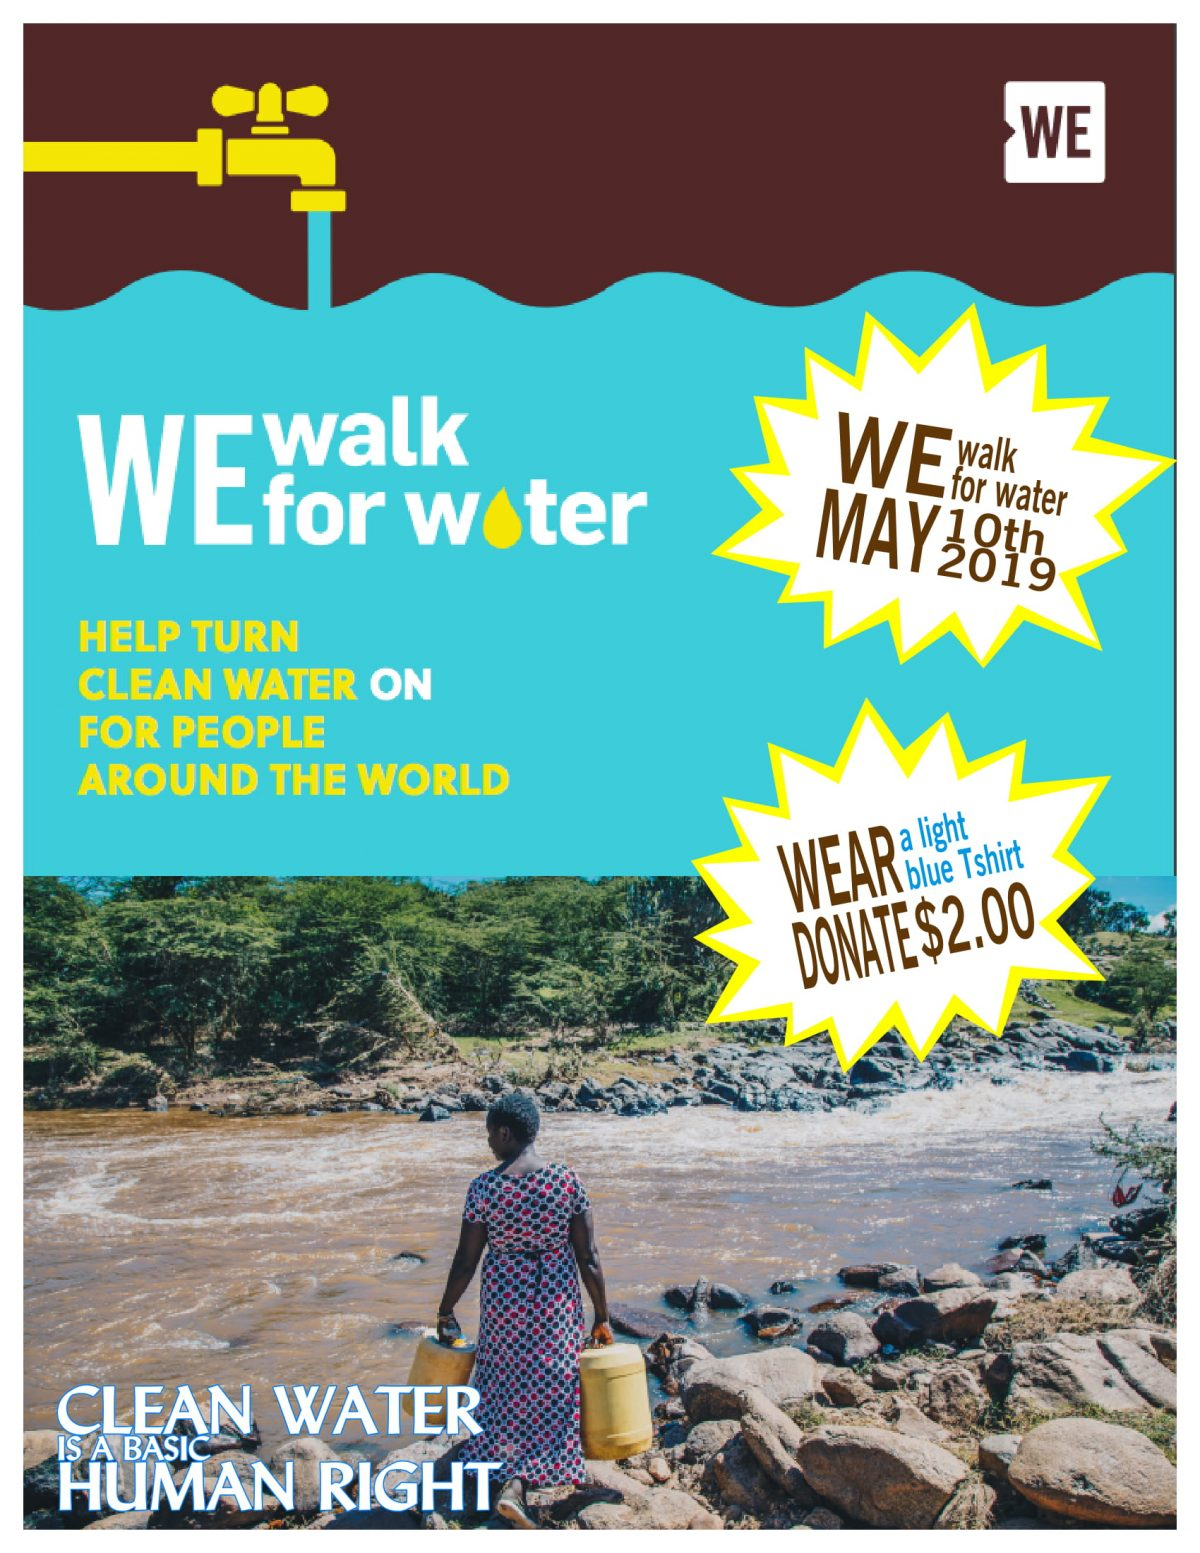 WE Walk for Water!